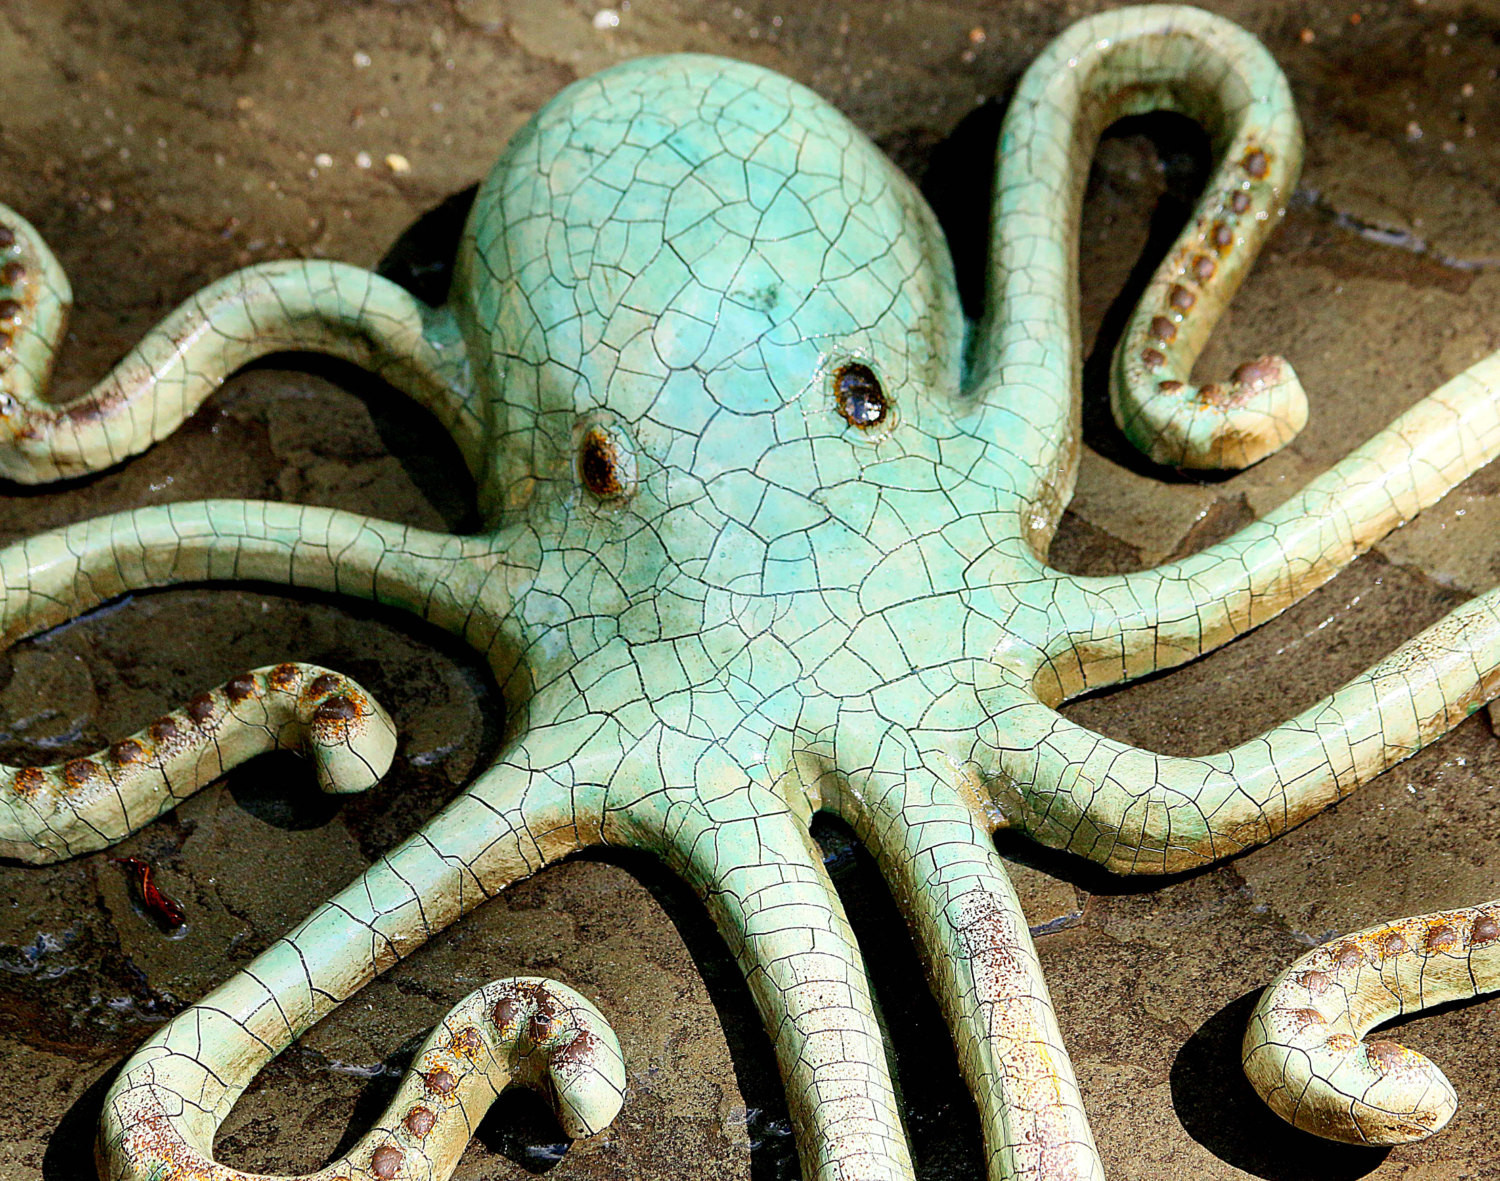 Best ideas about Octopus Wall Art . Save or Pin Sale Metal Octopus Wall Art Recycled Metal by Now.